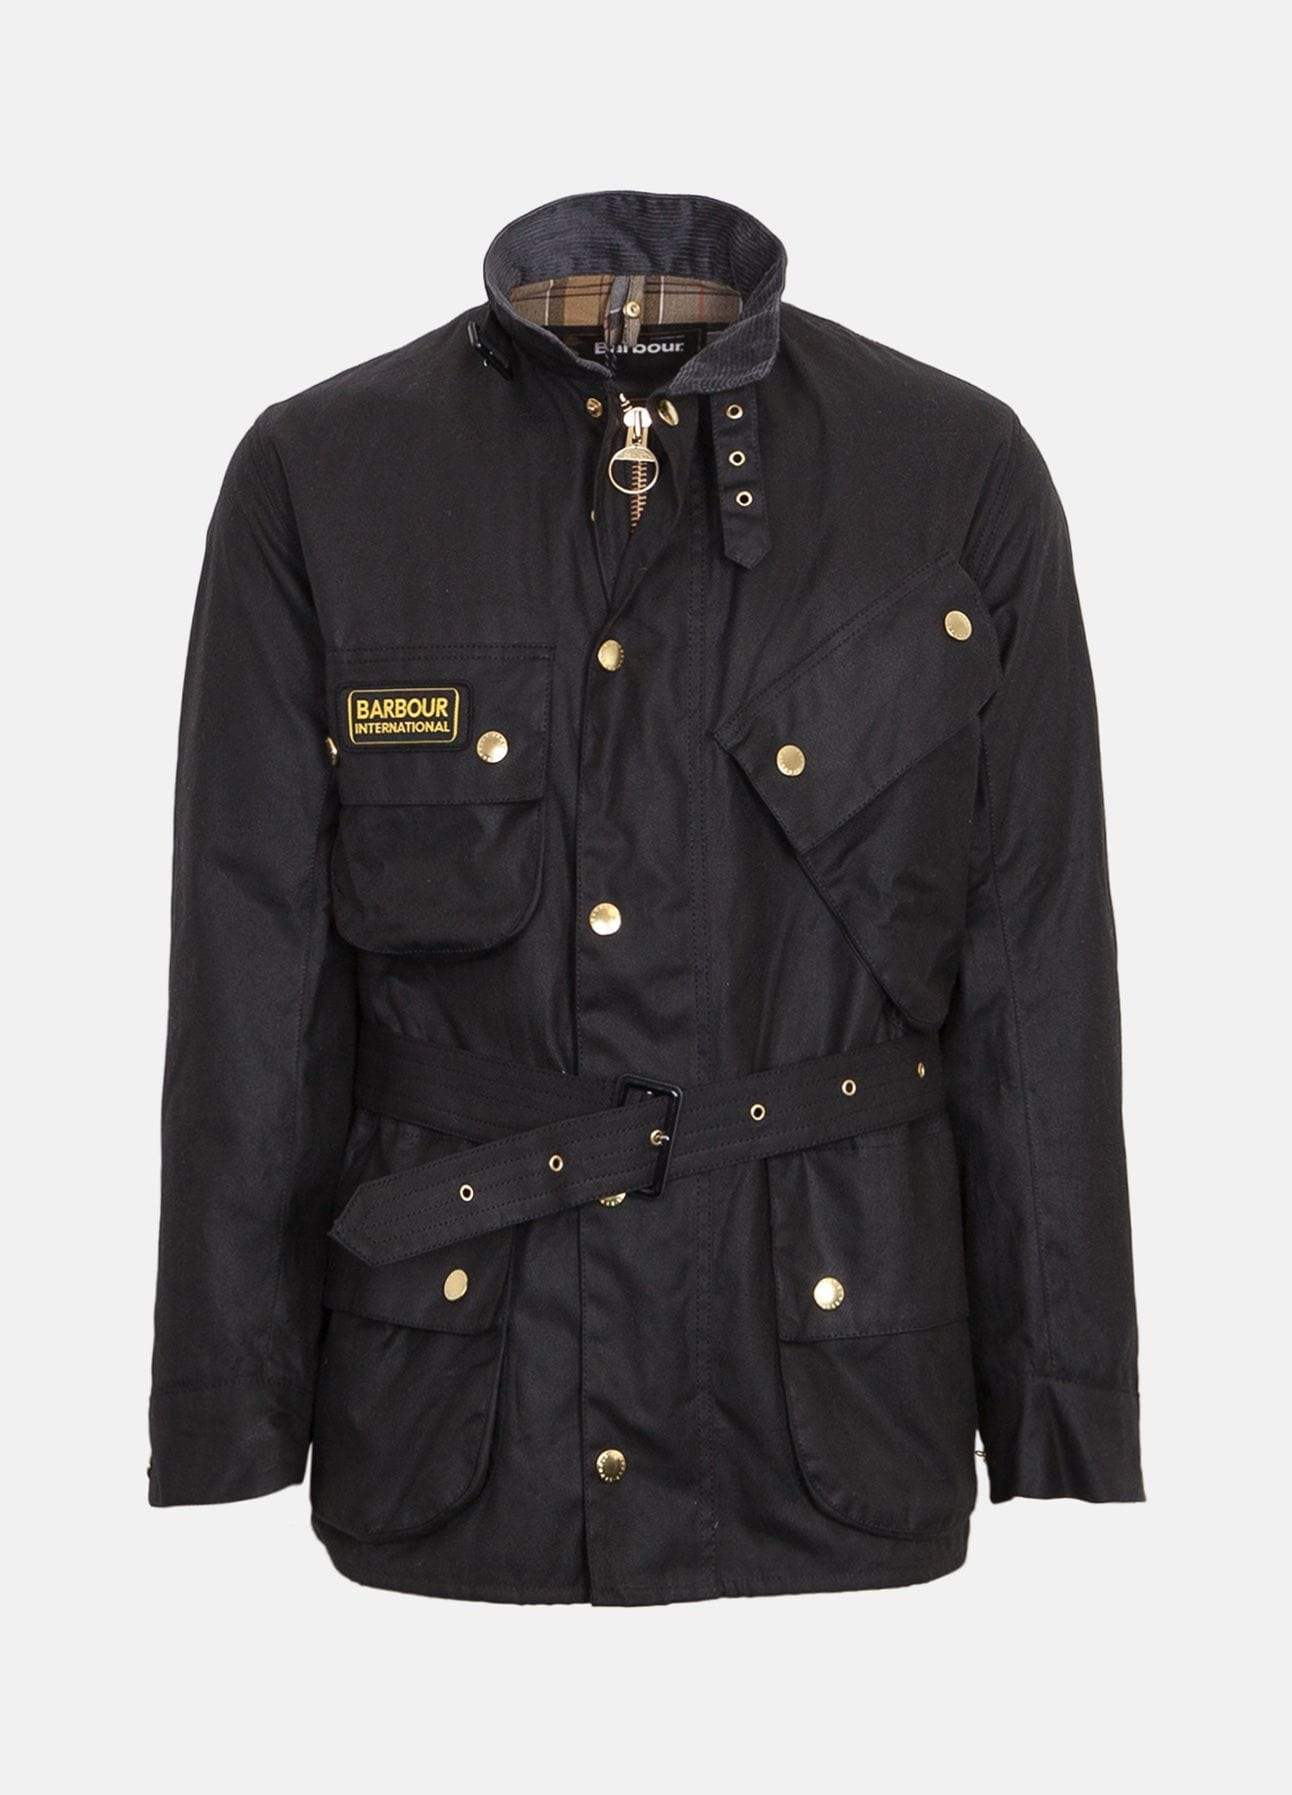 Sort International Original jakke fra Barbour